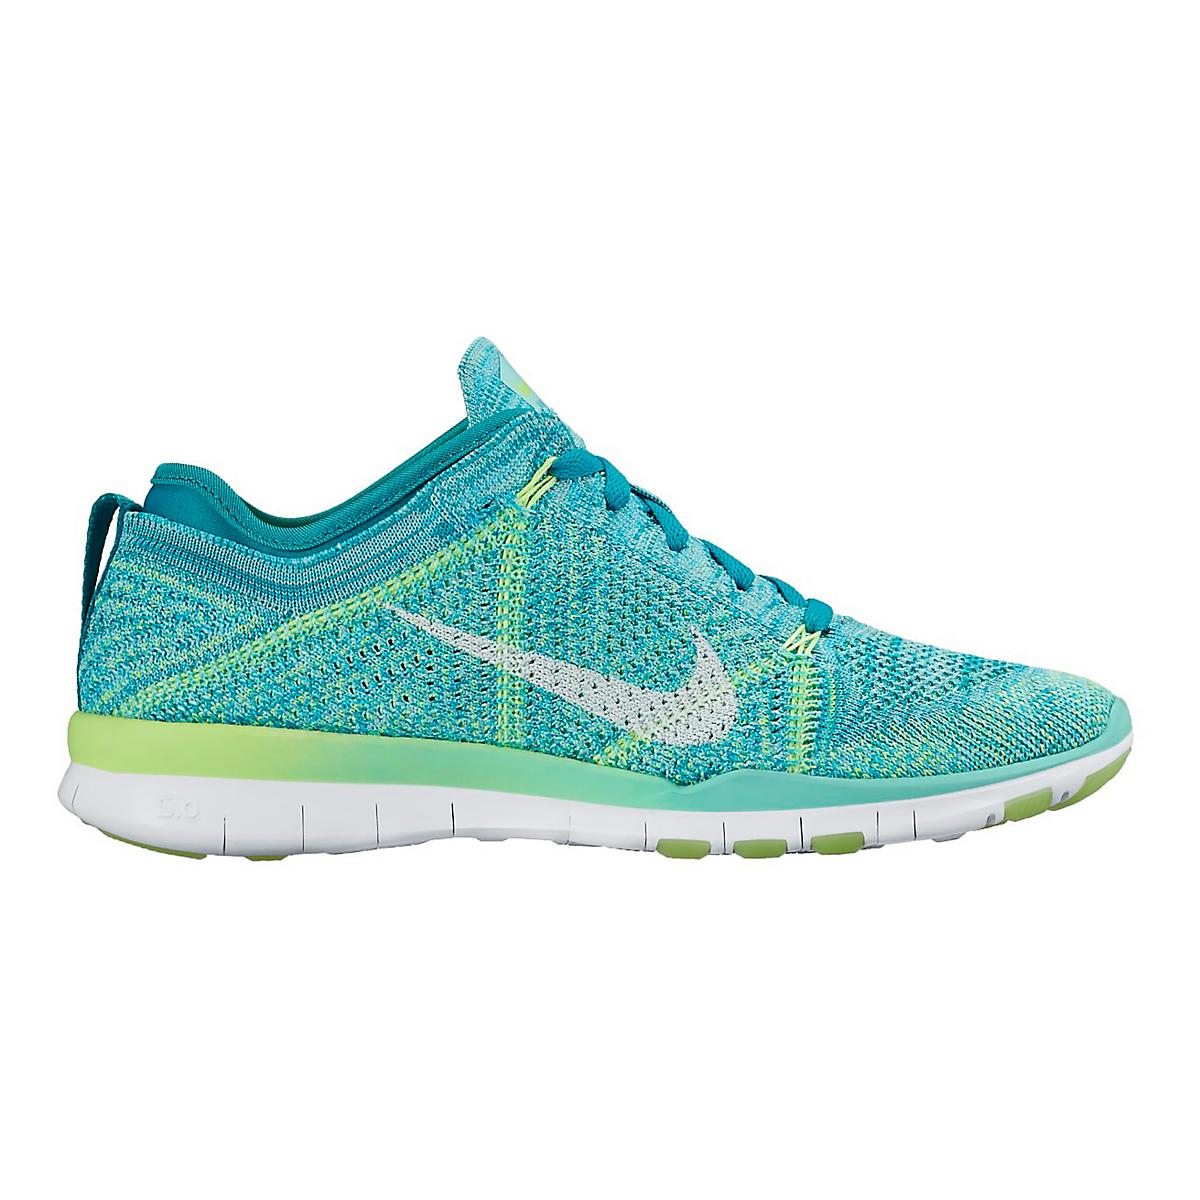 Womens Nike Free TR Flyknit Cross Training Shoe at Road Runn